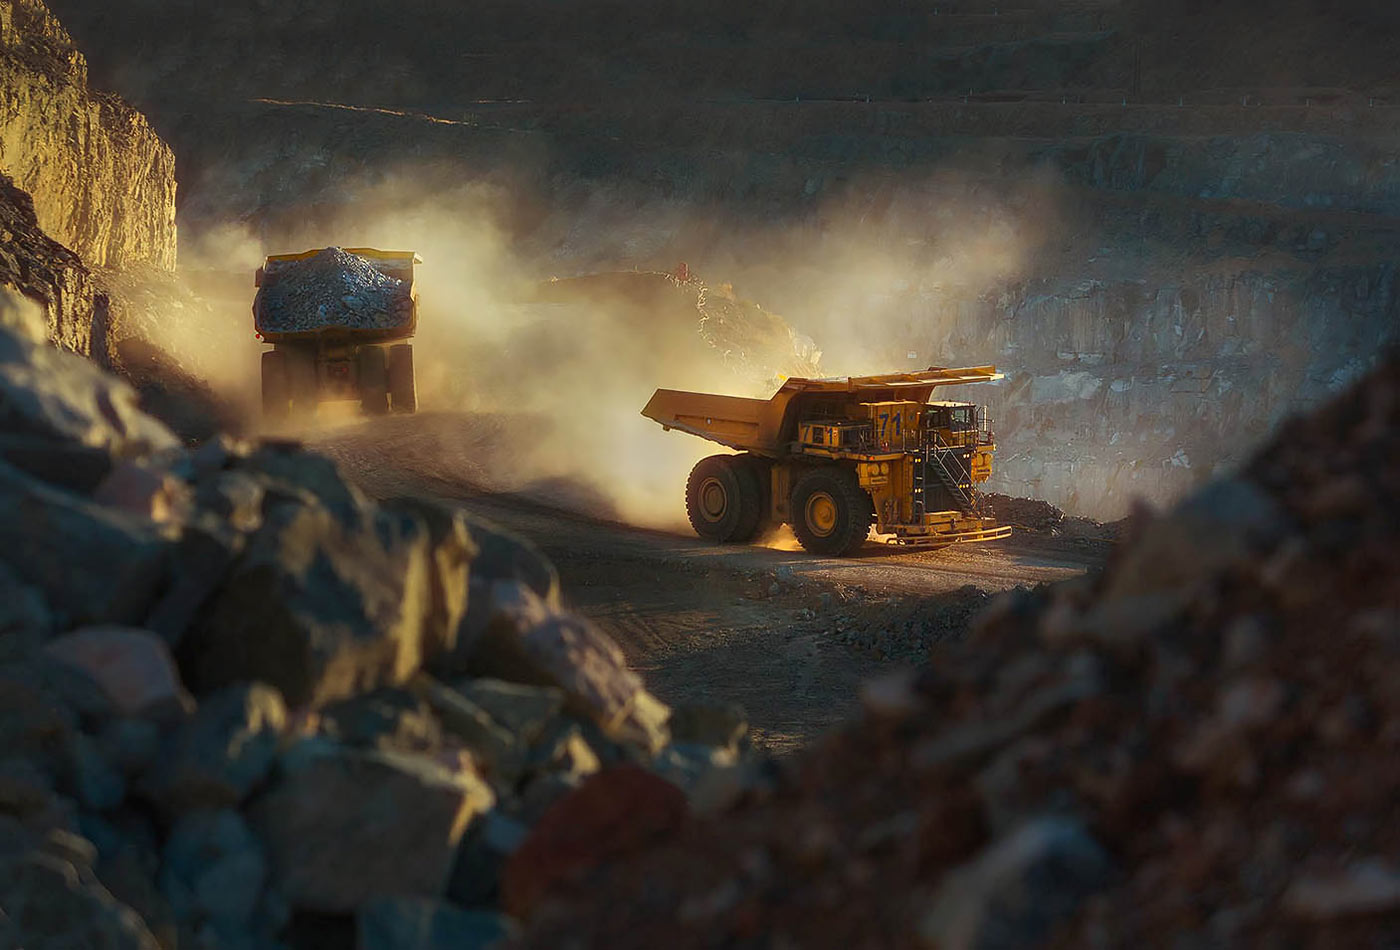 Haul trucks in action at open pit mine - professional mining equipment photography